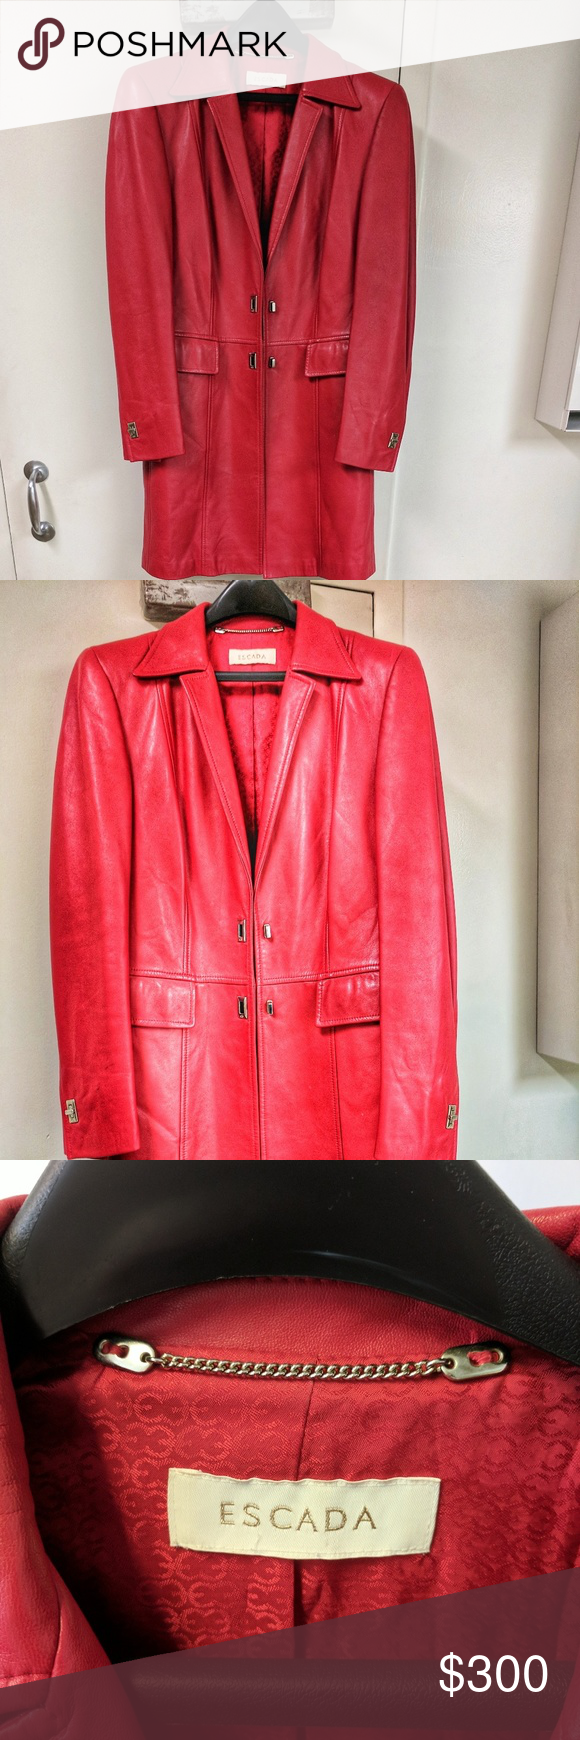 Escada Red Leather Jacket Soft Leather True Red Long Jacket Size M Escada Jackets Coats Trench Coats Red Leather Jacket Escada Jacket Leather Jacket [ 1740 x 580 Pixel ]